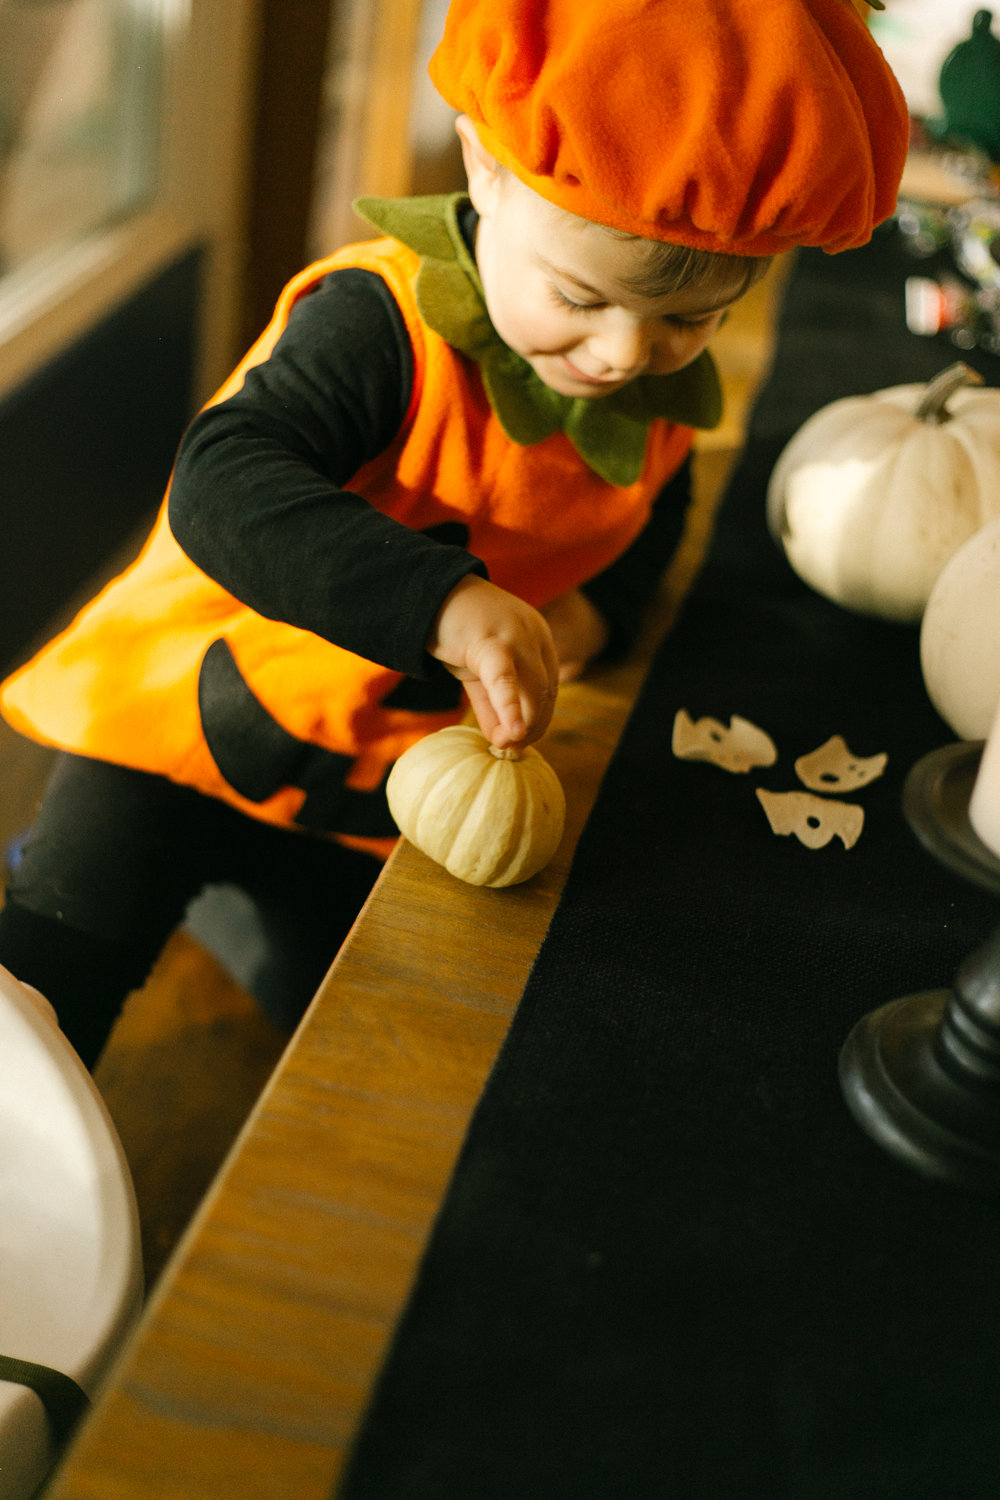 Halloween Kid Portraits at Home | Chelsea Macor Photography-6.jpg